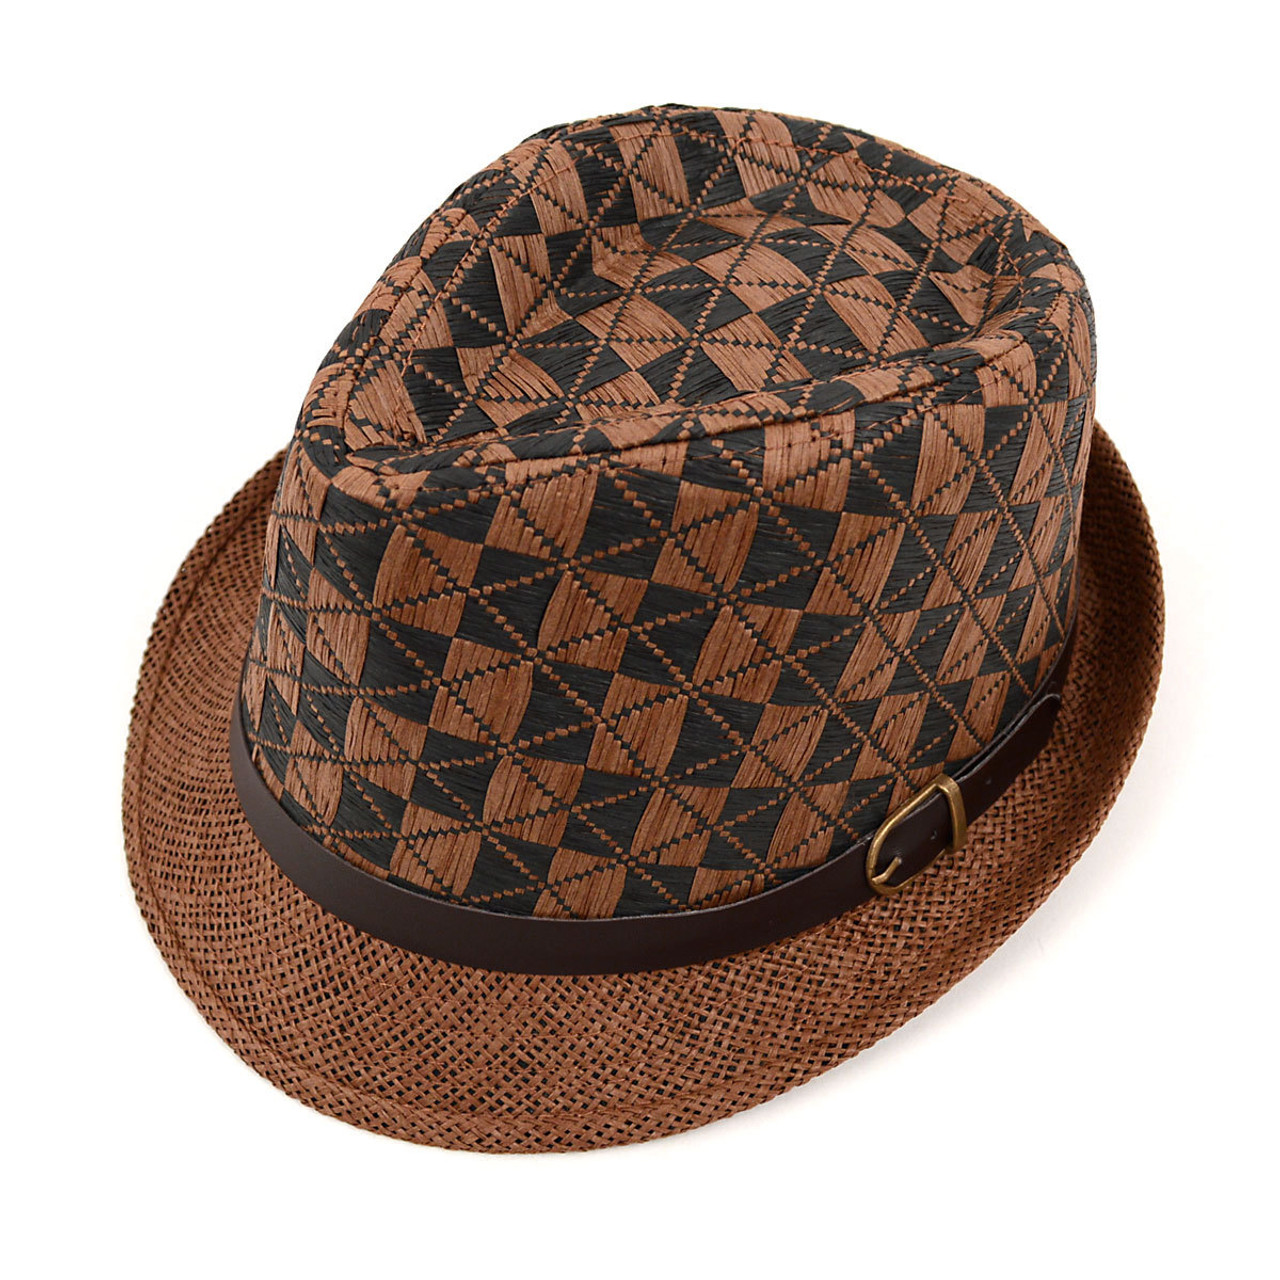 7d992ba125668 Spring Summer Two-Tone Woven Brown Fedora Hat with Faux Leather Trim -  H10209 ...